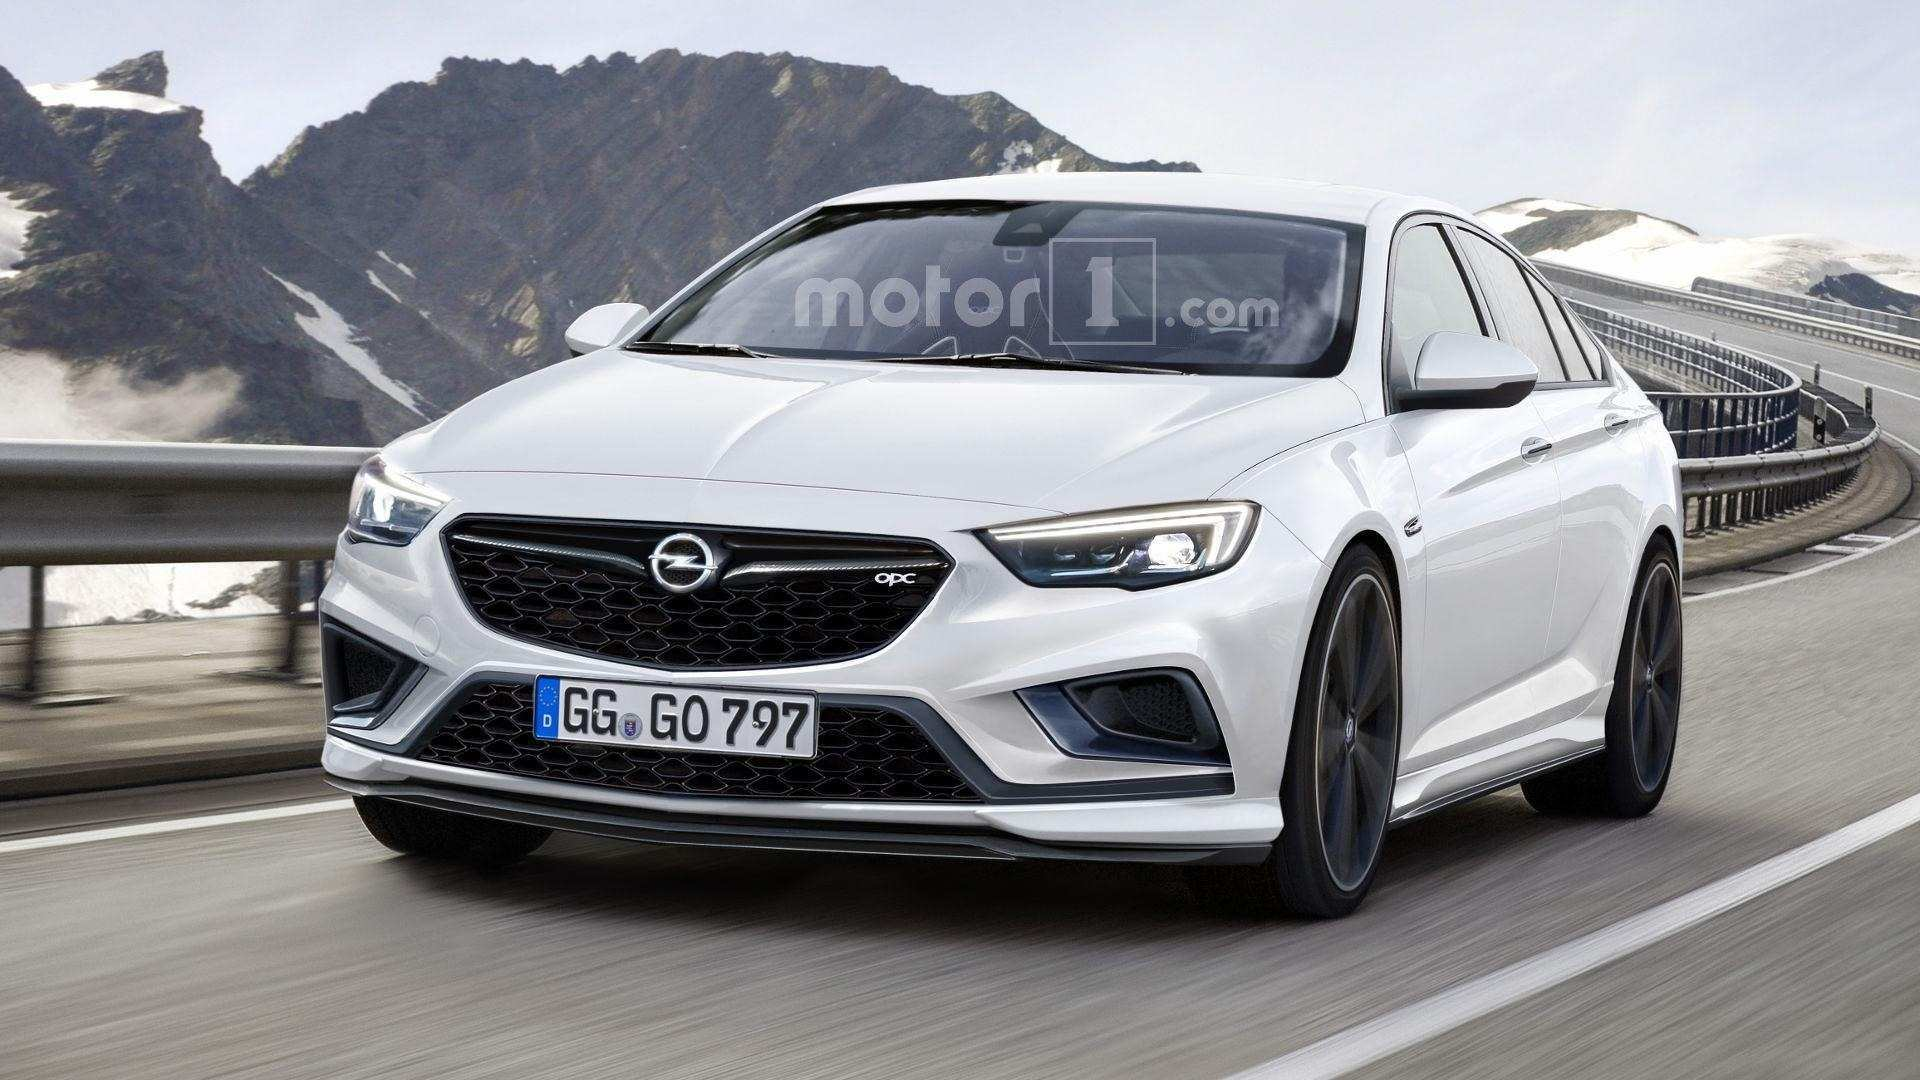 35 Best Review Yeni Opel Insignia 2020 New Concept with Yeni Opel Insignia 2020